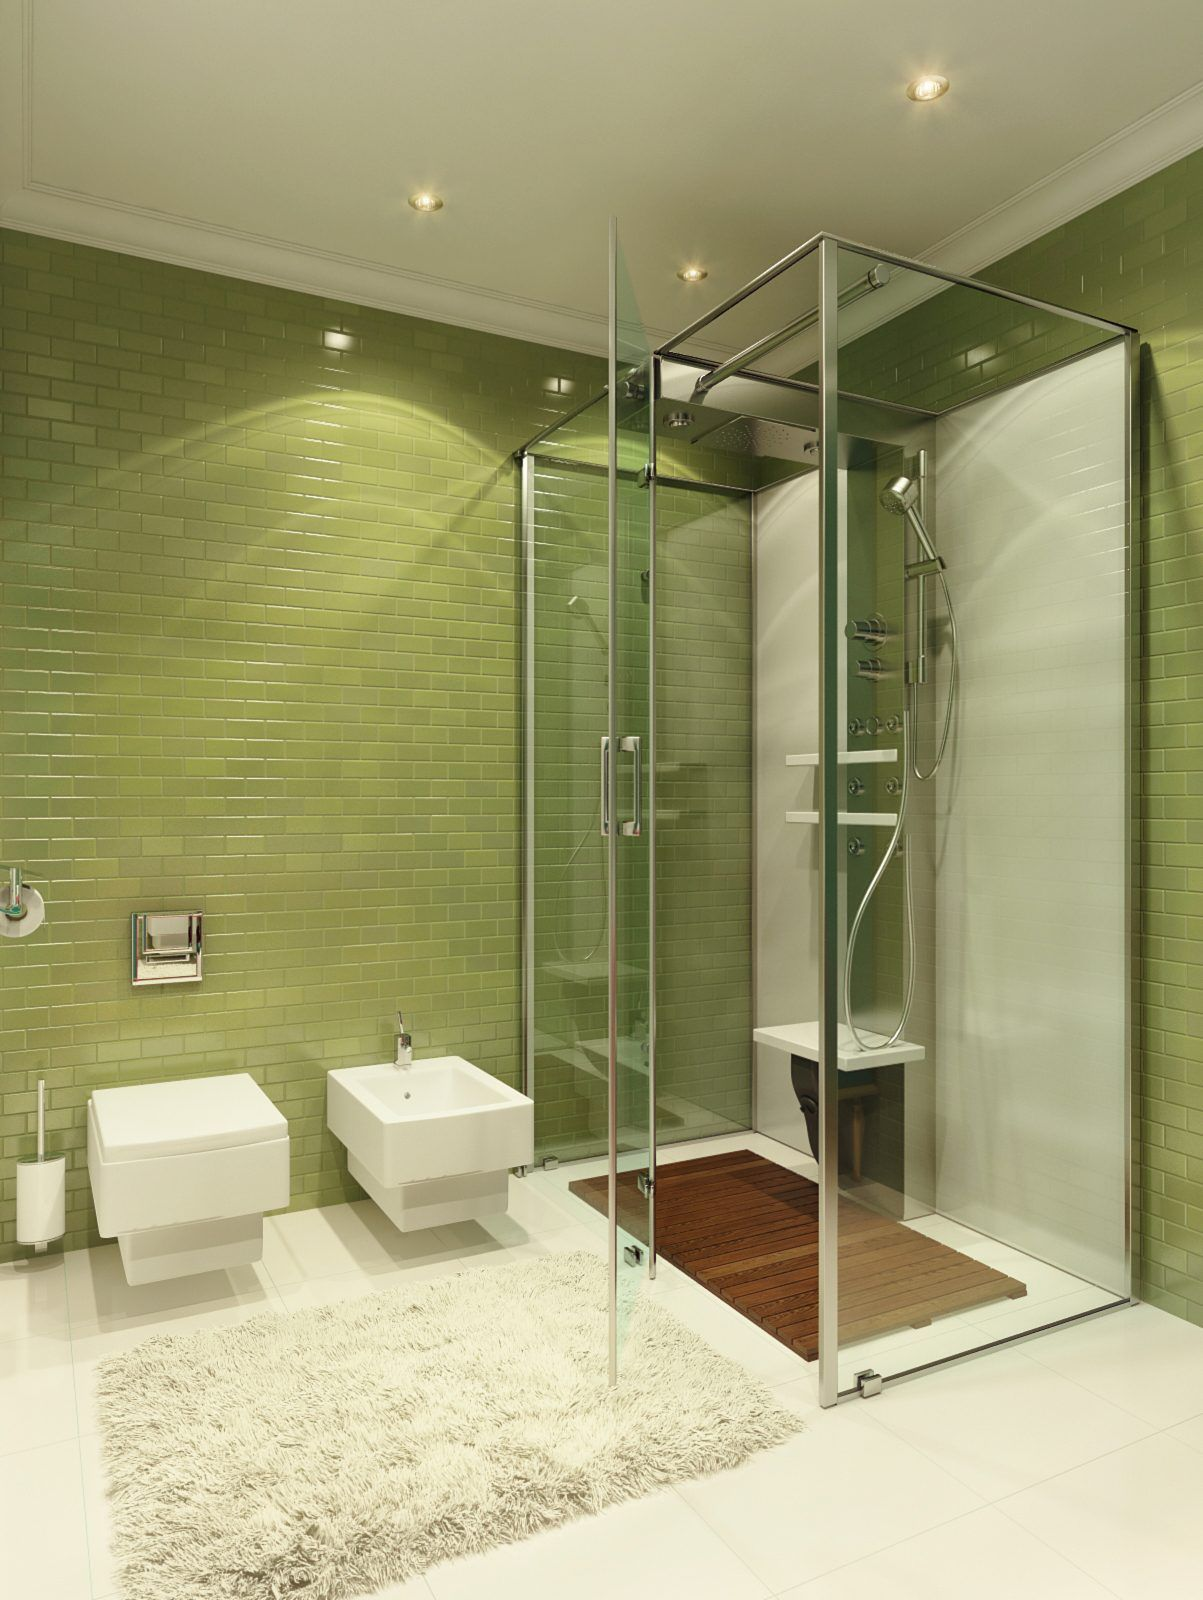 Renew Your Small Bathroom With Modern Decor In Green  Bathroom Captivating Contemporary Bathroom Tile Designs Inspiration